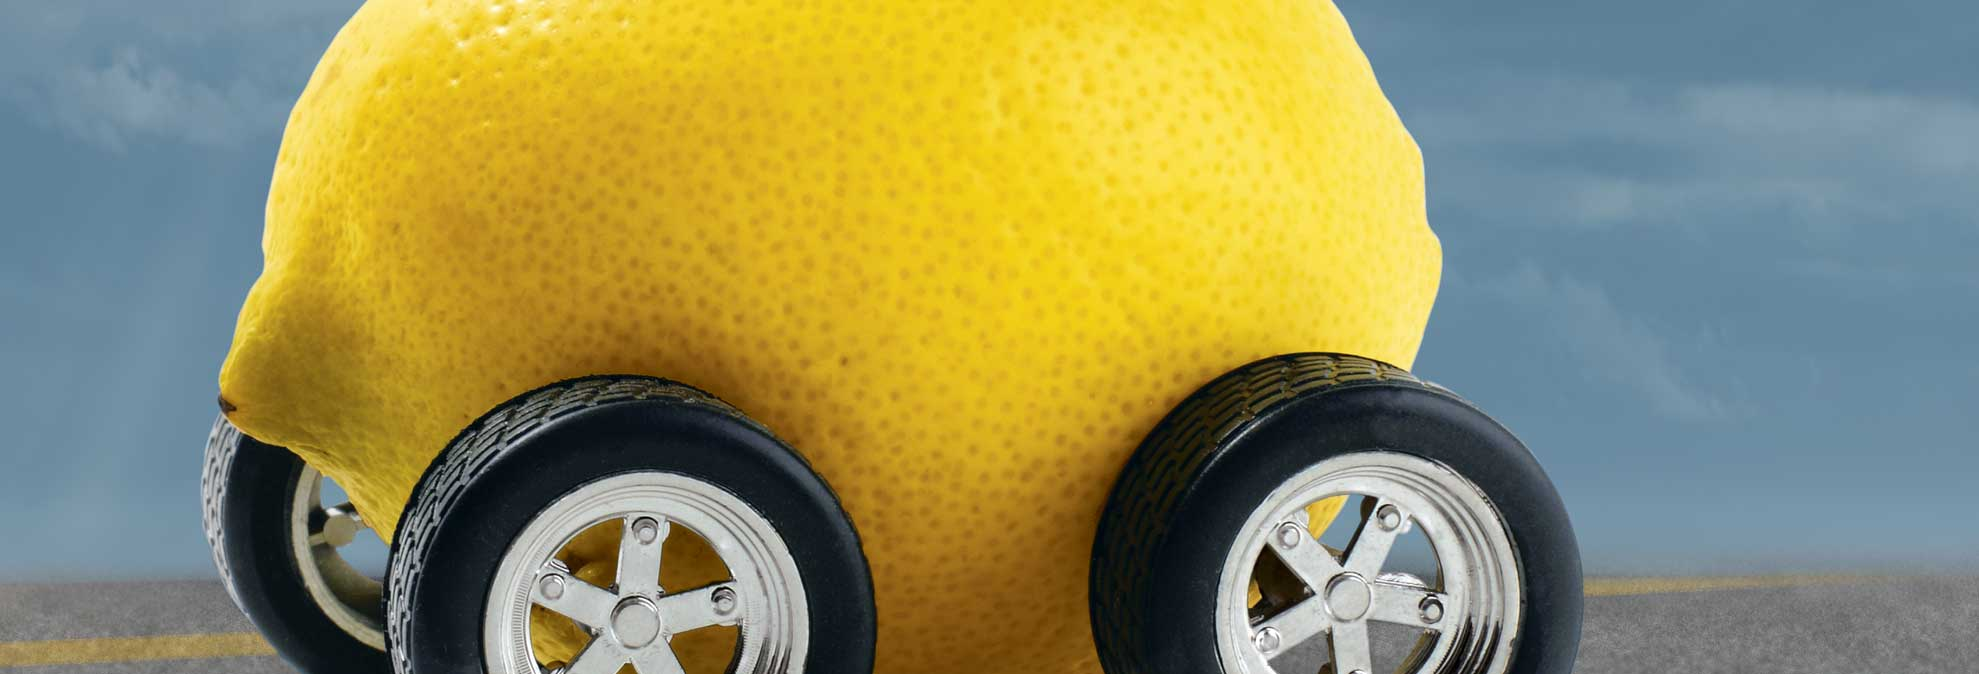 lemon car banner